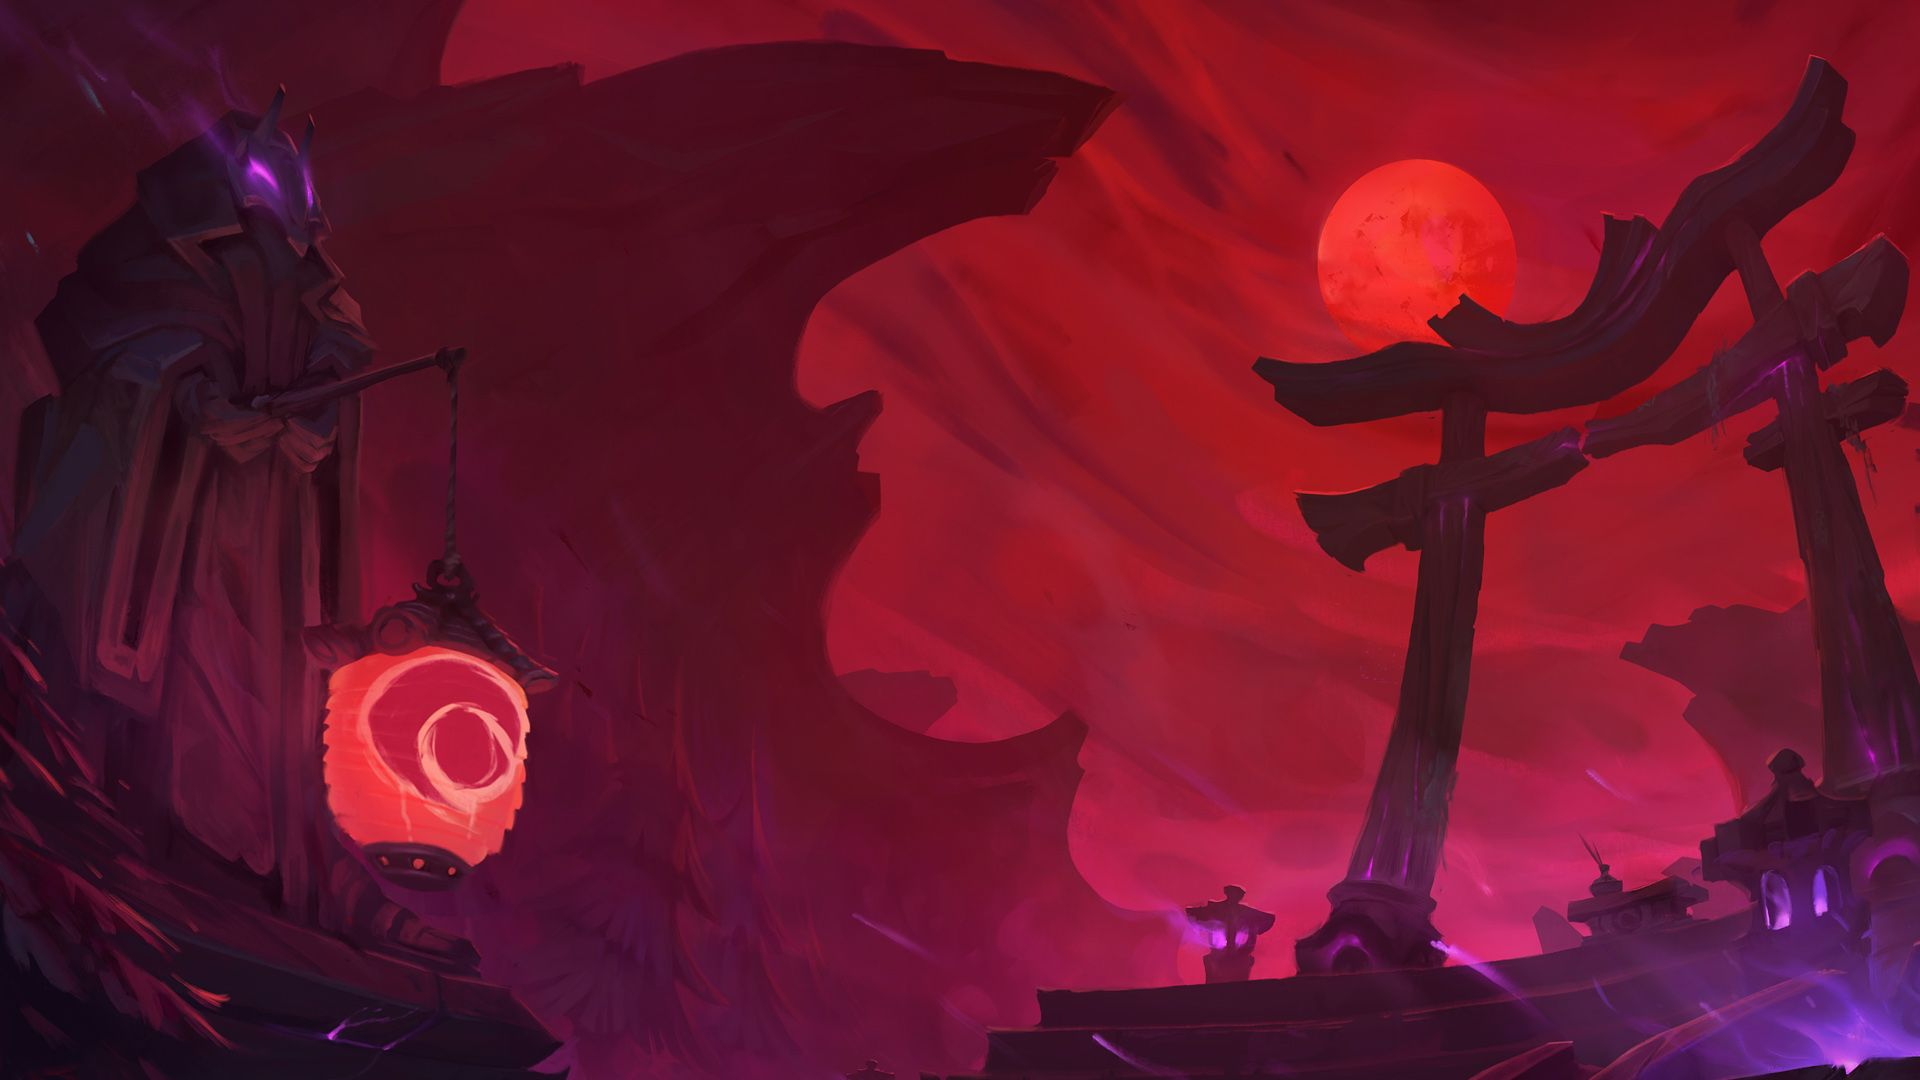 blood moon yasuo wallpaper, blood moon wallpaper hd